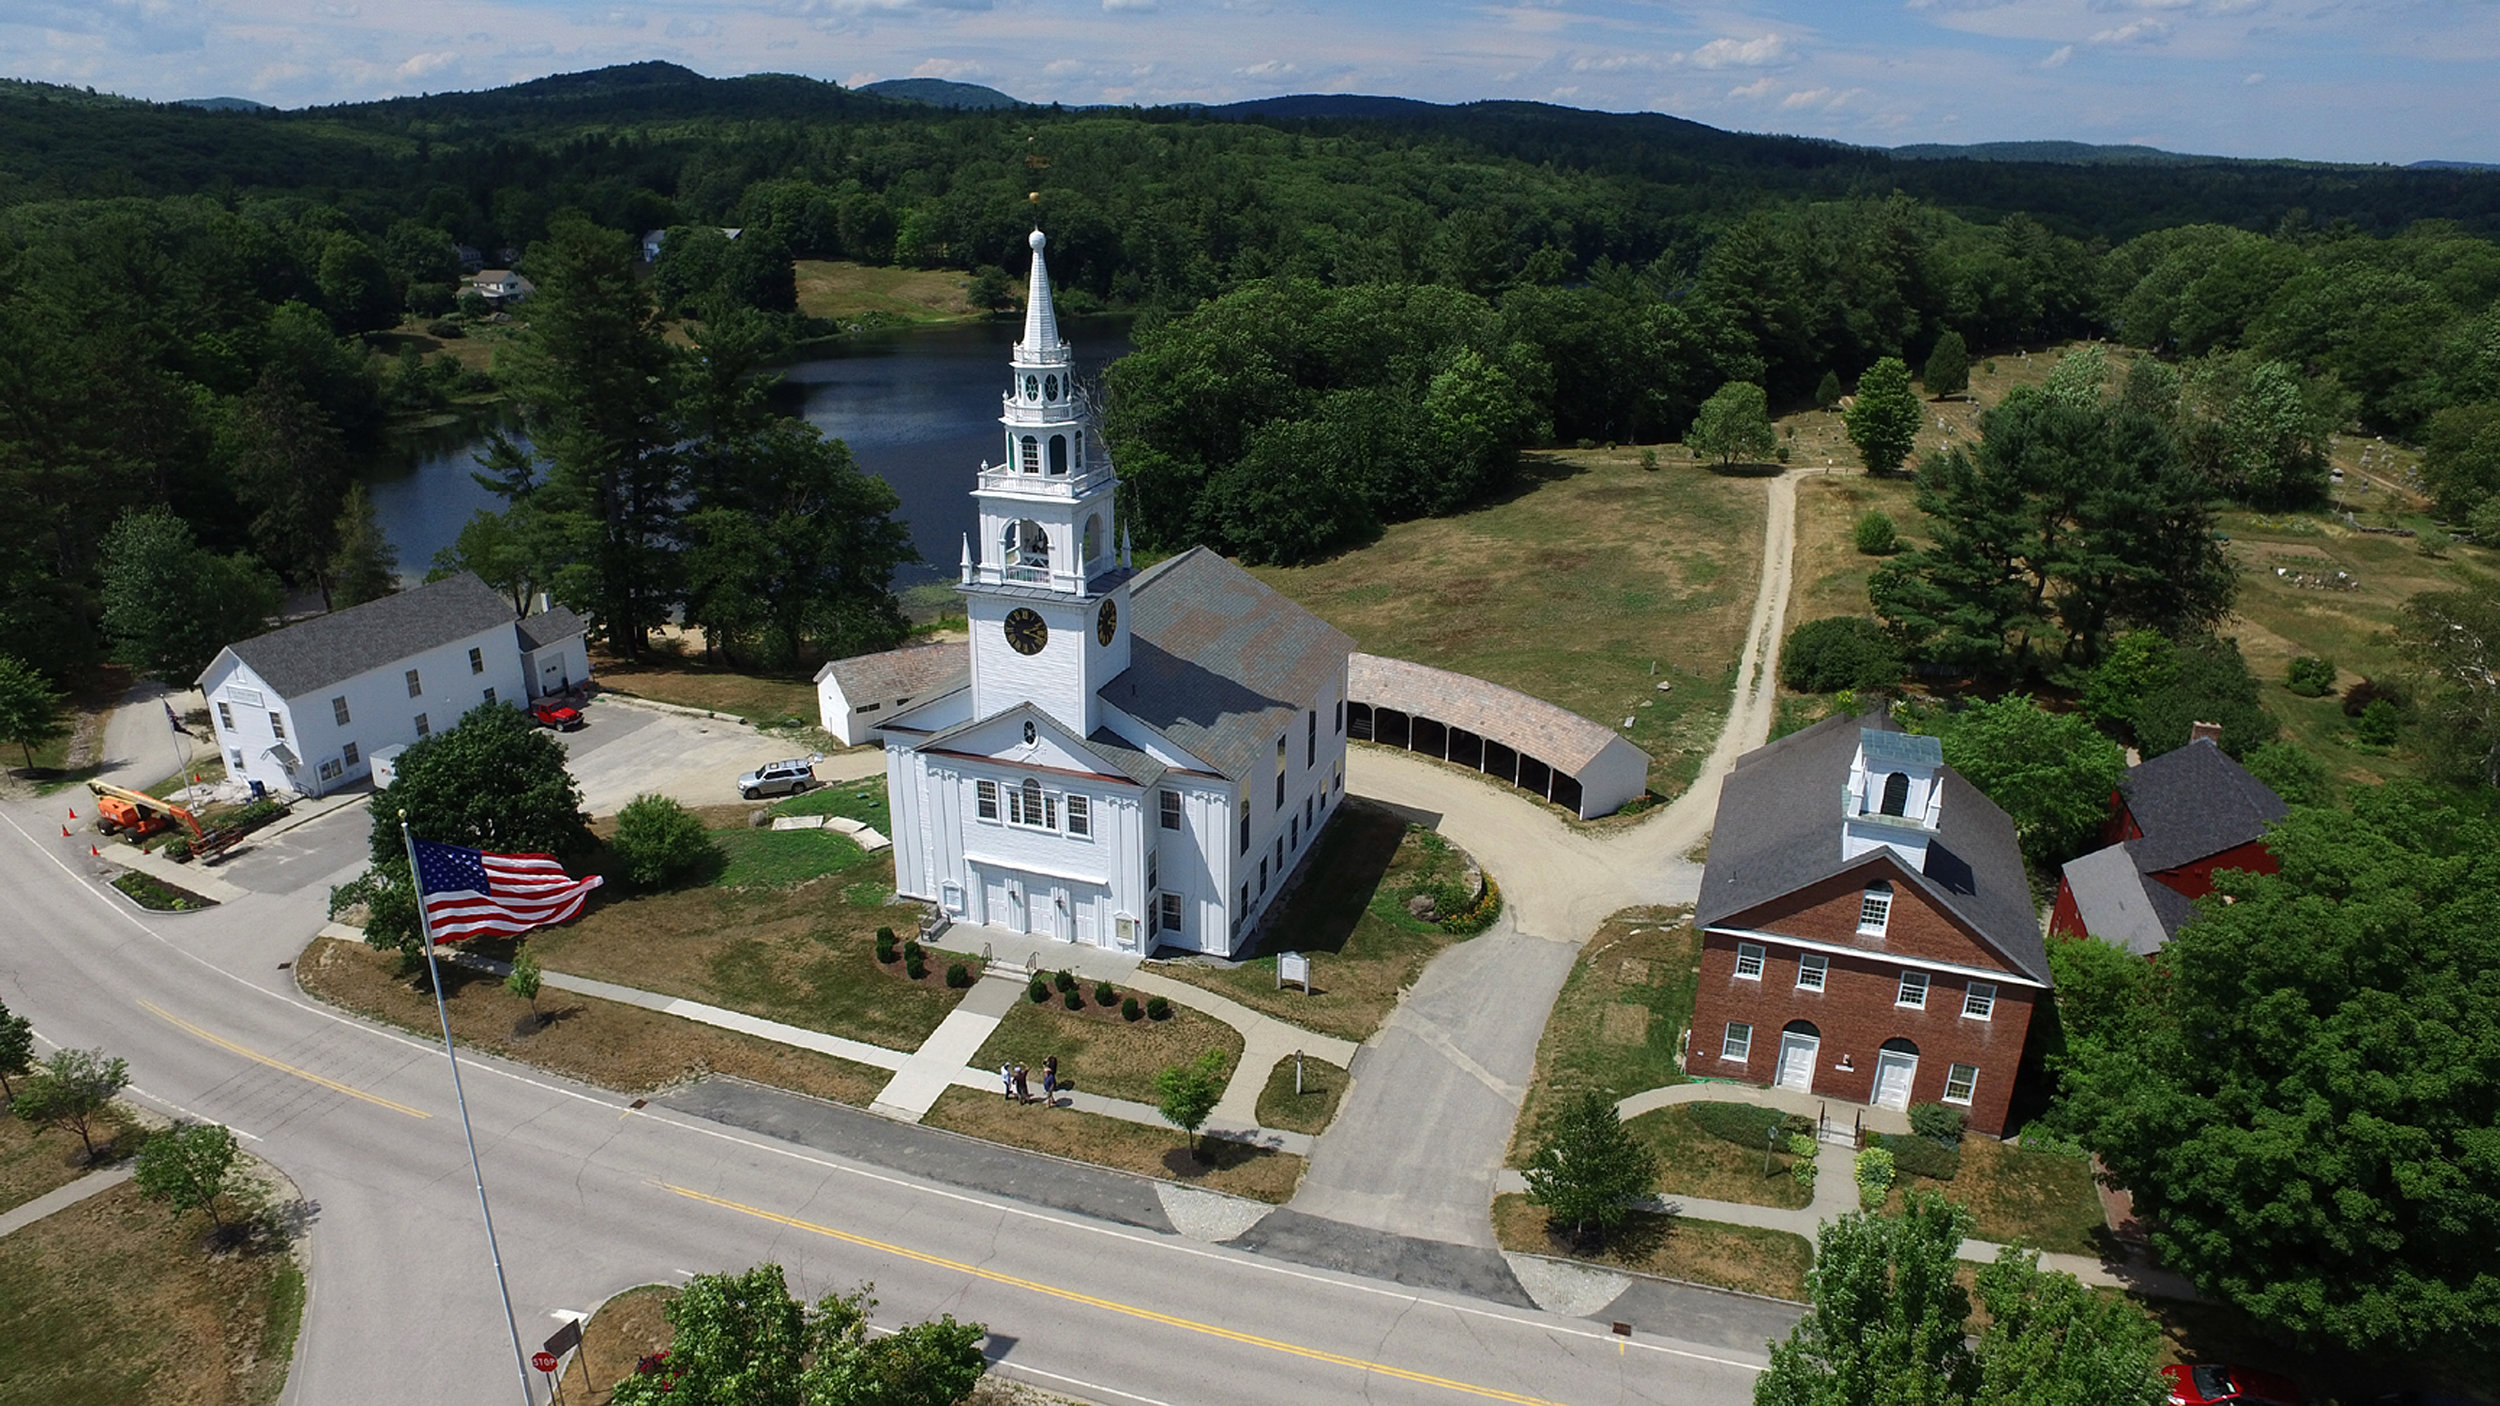 The 1820 Hancock Meetinghouse is one of only two in New Hampshire that are jointly owned by a town and a church. It serves as the anchor of the town's historic village. (Photo courtesy of the Town of Hancock.)